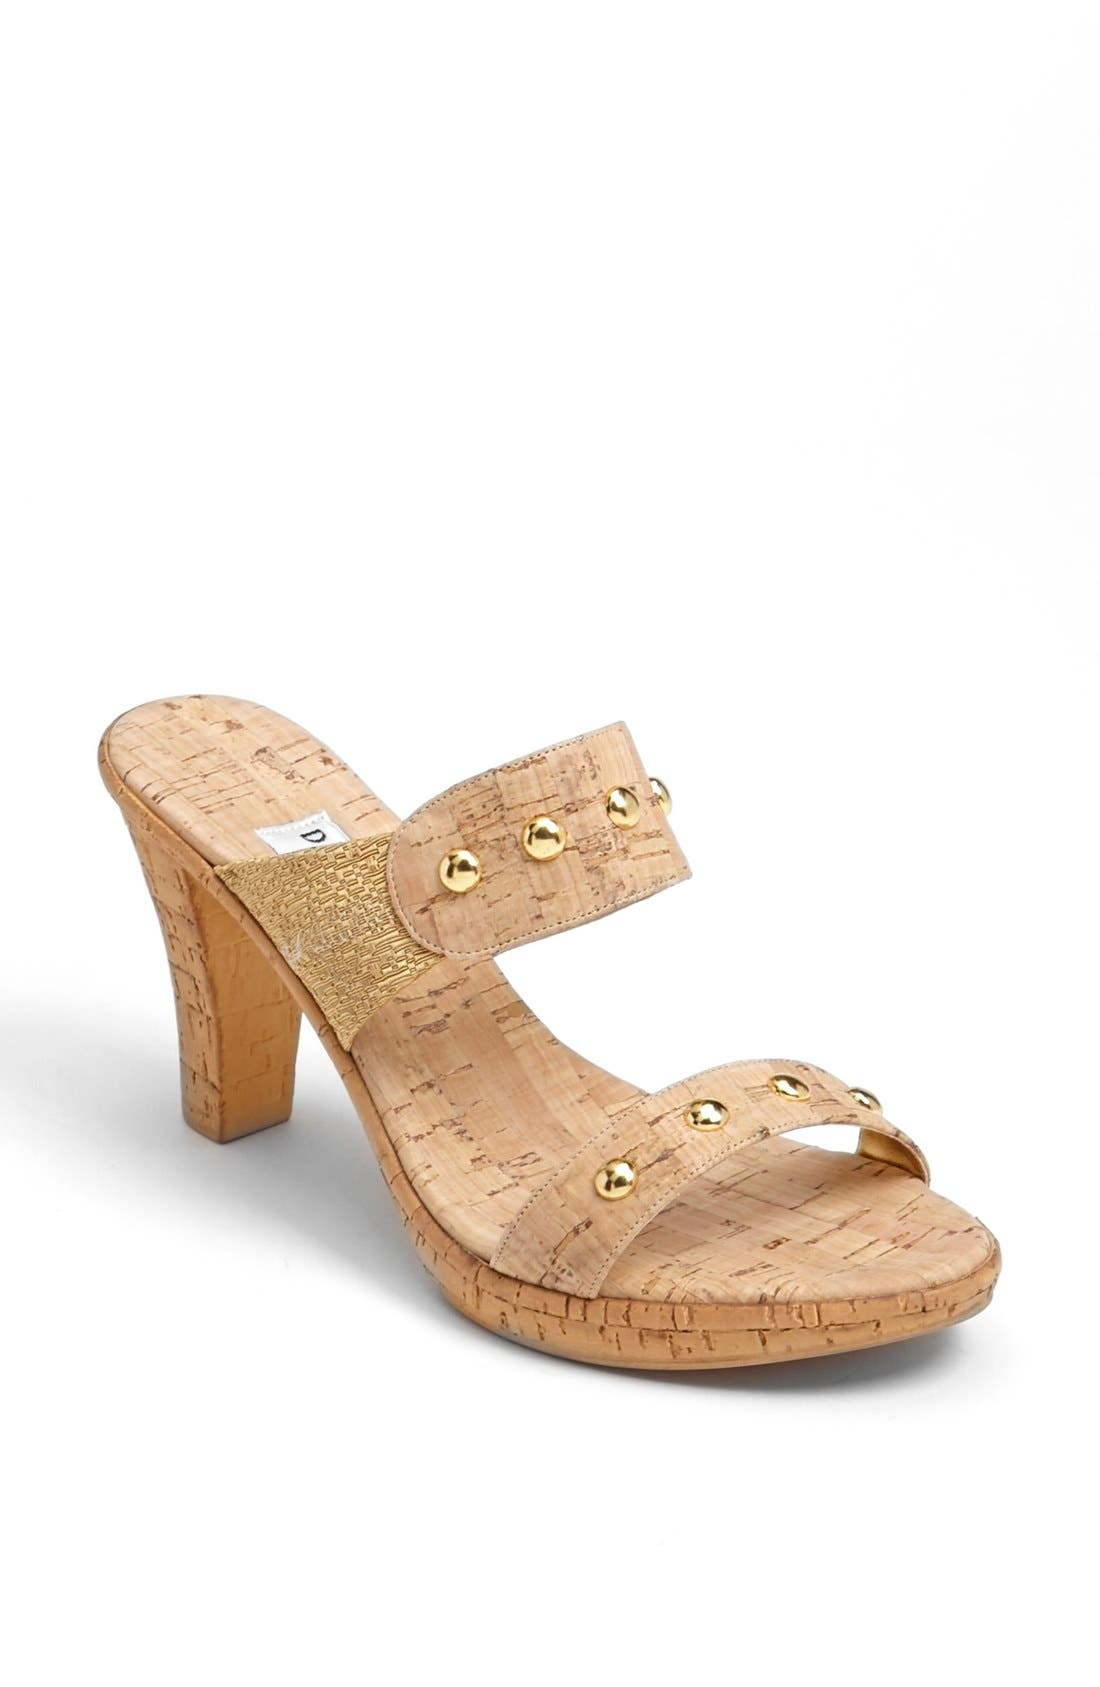 Alternate Image 1 Selected - Dezario 'Austin' Sandal